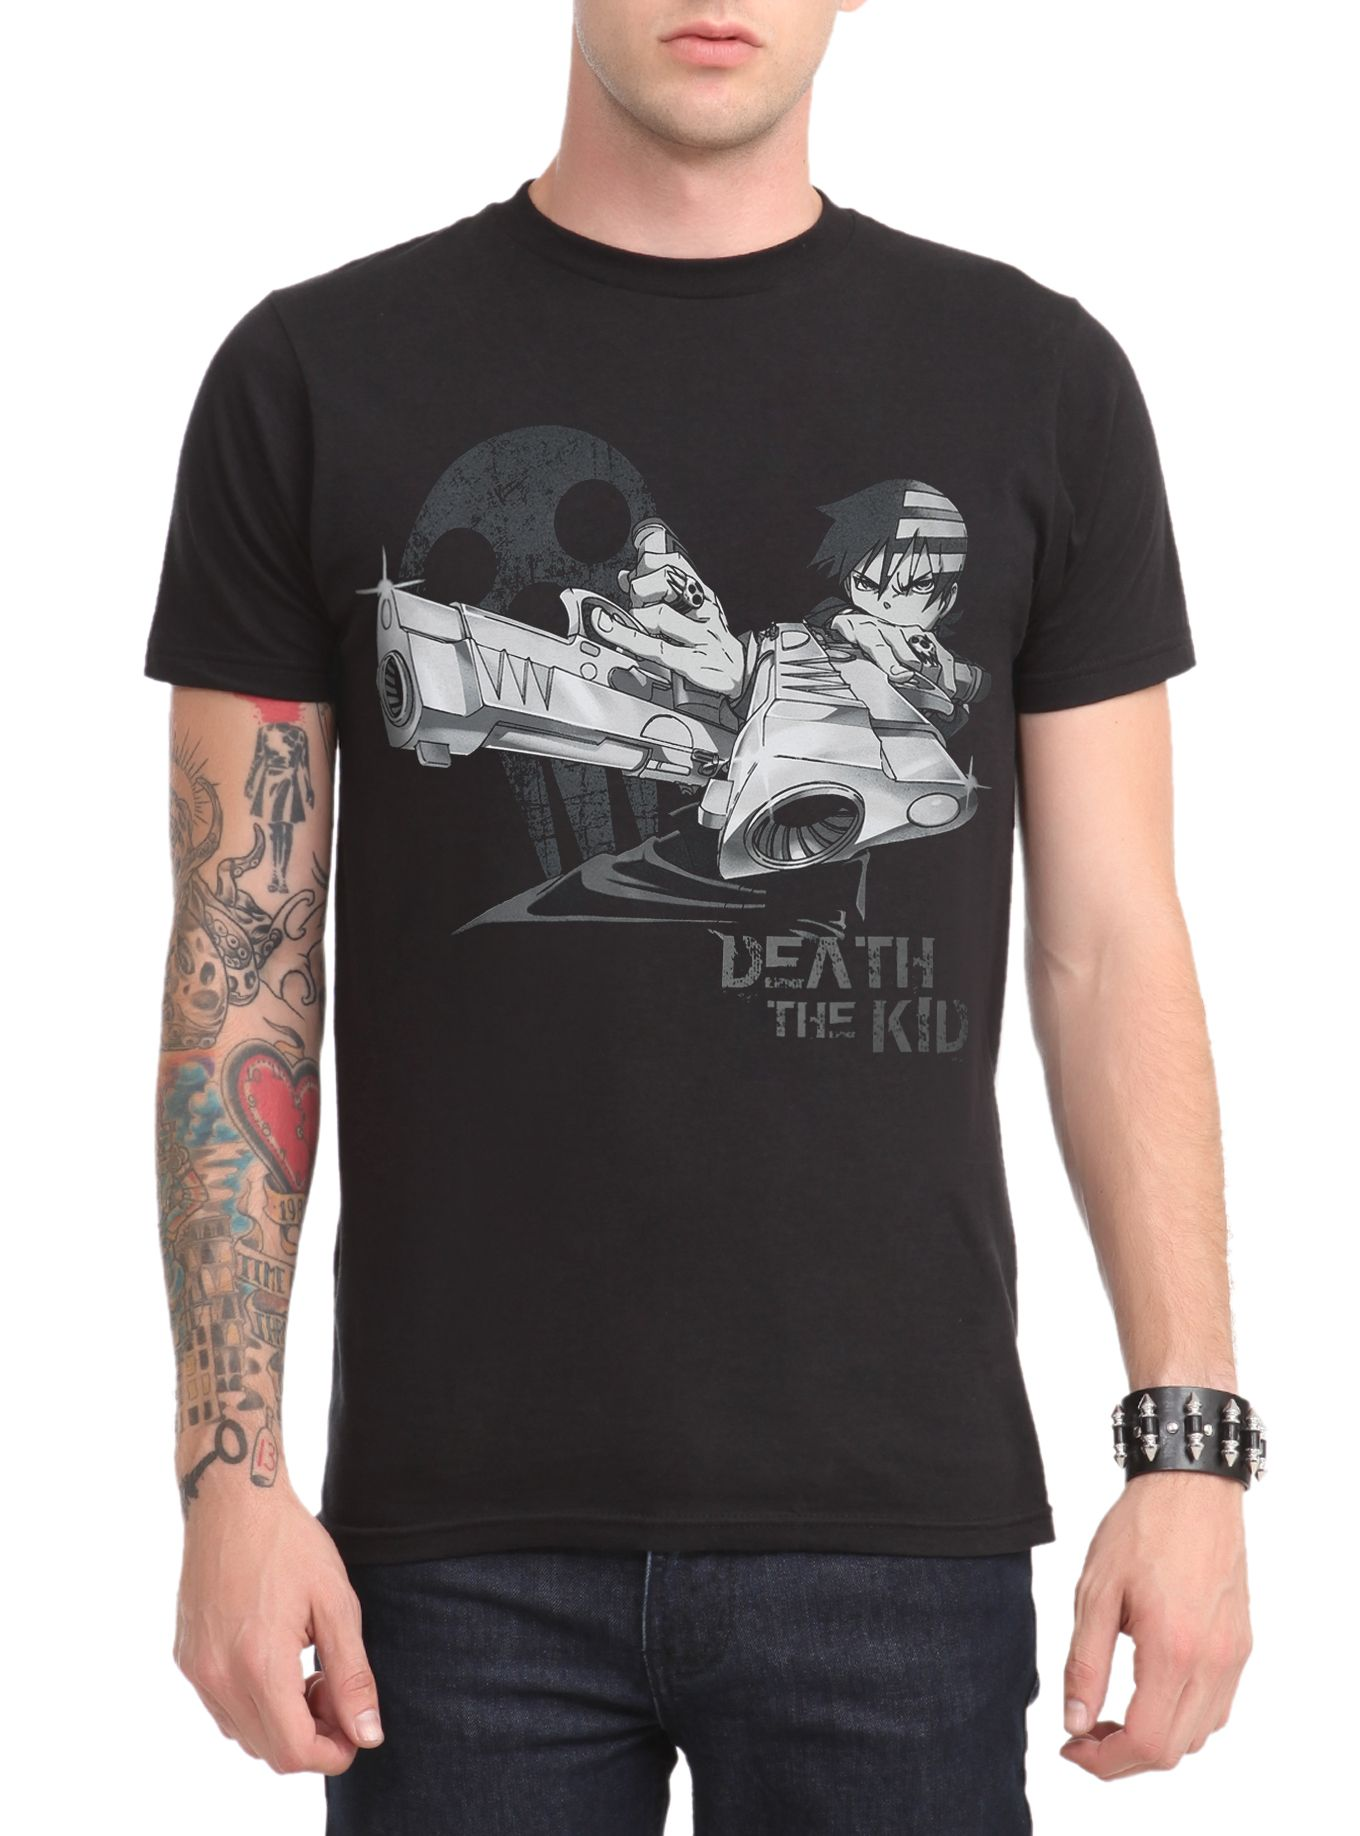 Soul Eater Death The Kid Slim-Fit T-Shirt